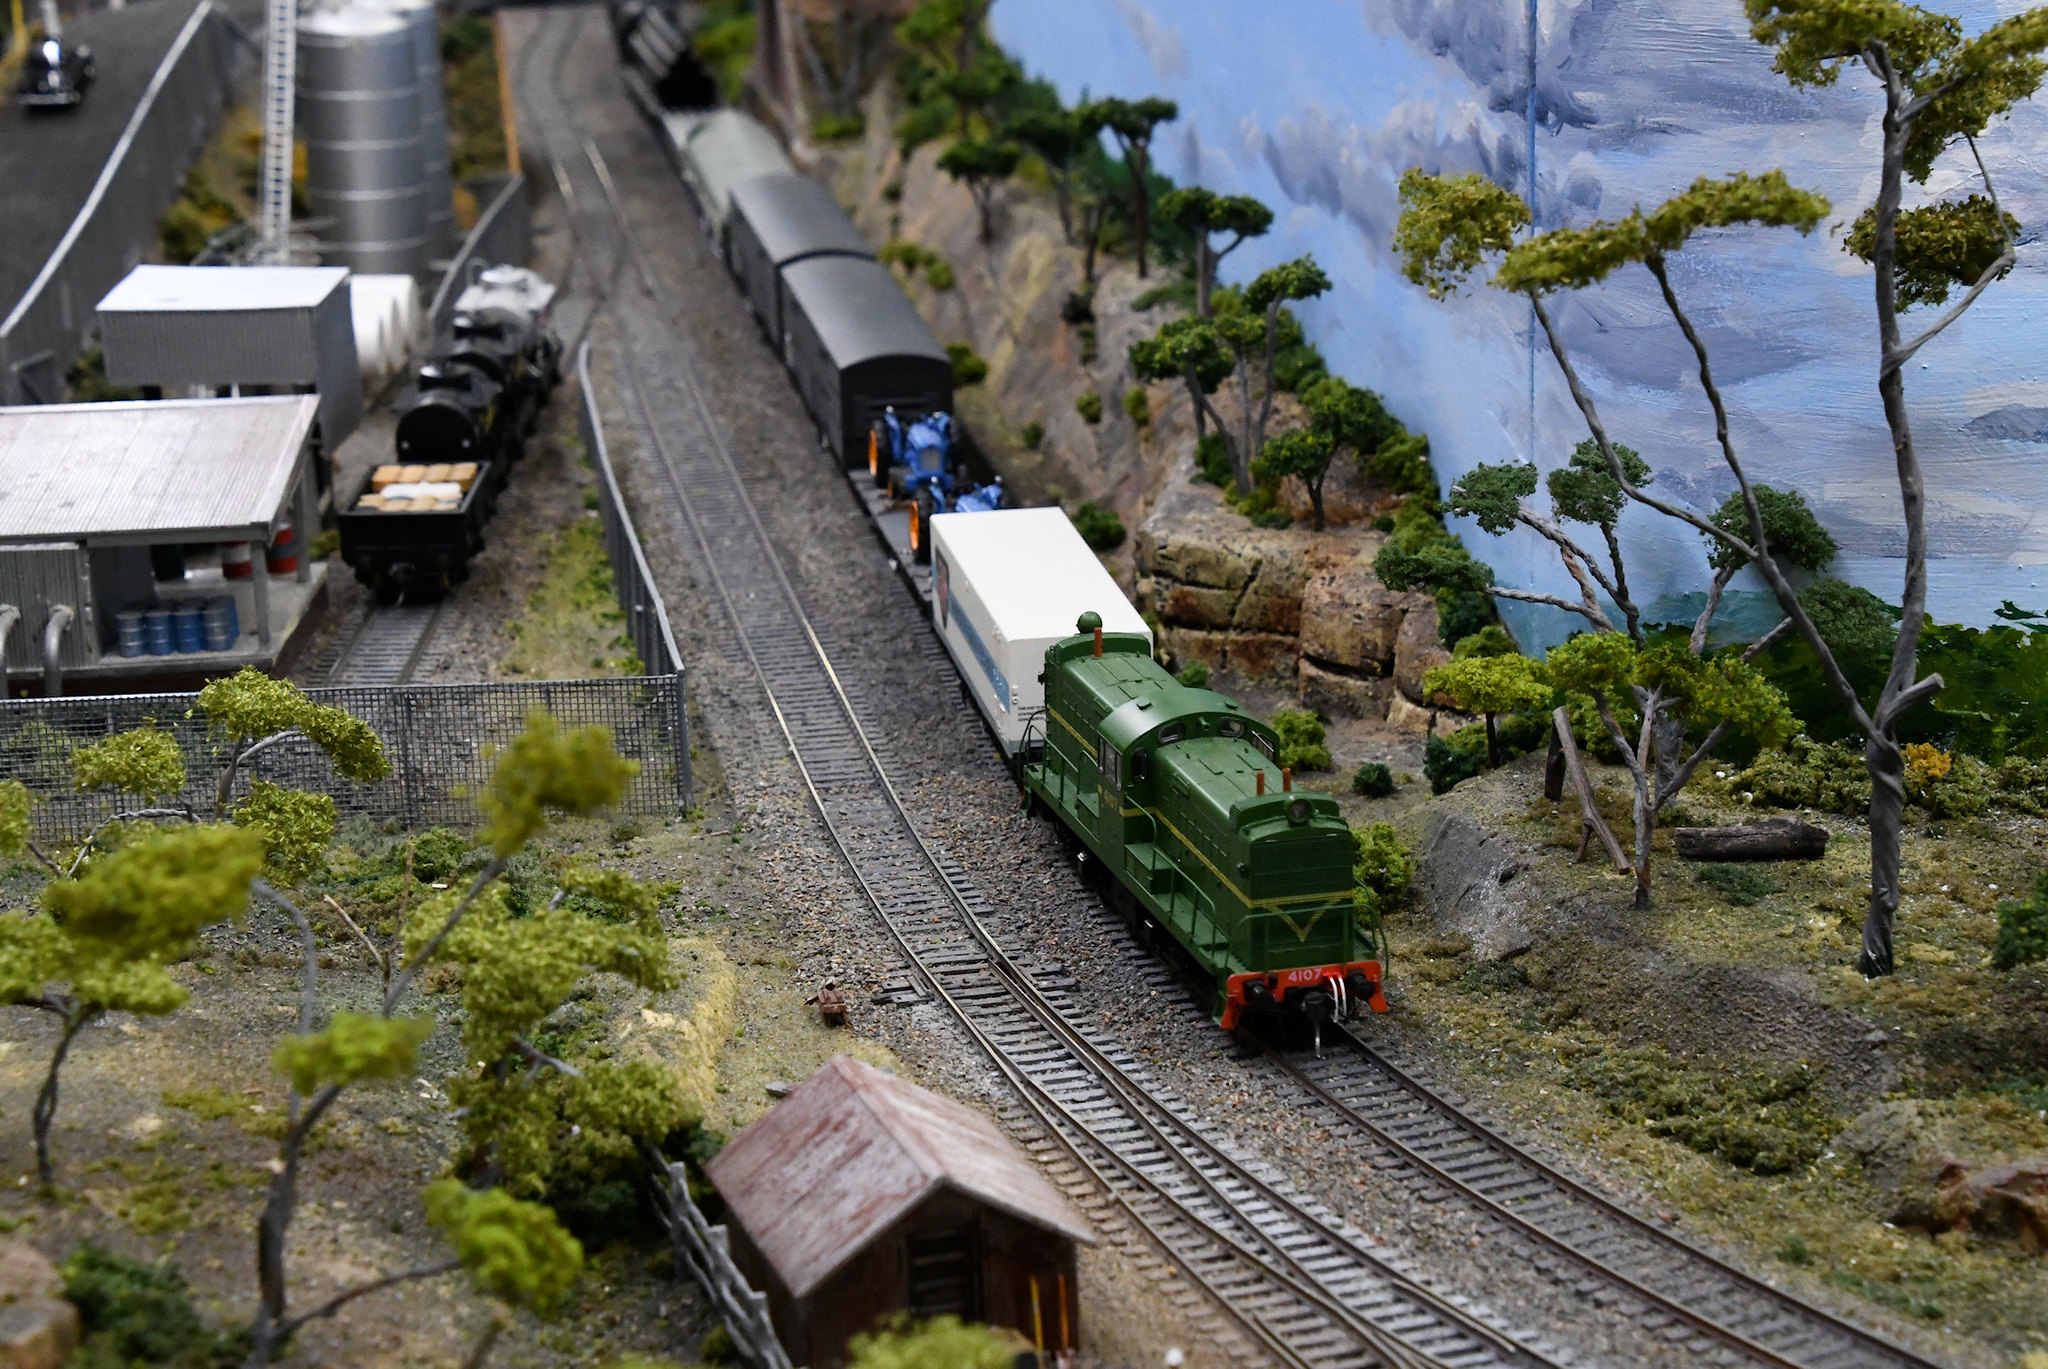 4107, Blue Mountains Layout, Epping Model Railway Exhibition, Rosehill, Sydney, NSW.